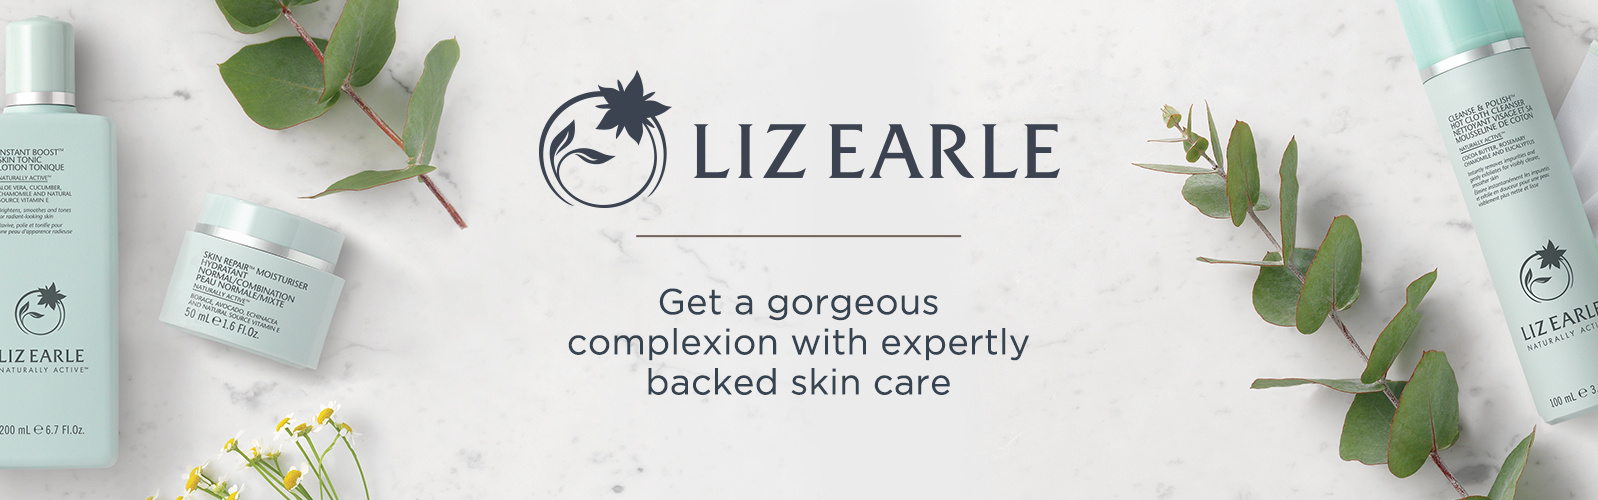 Liz Earle. Get a gorgeous complexion with expertly backed skin care